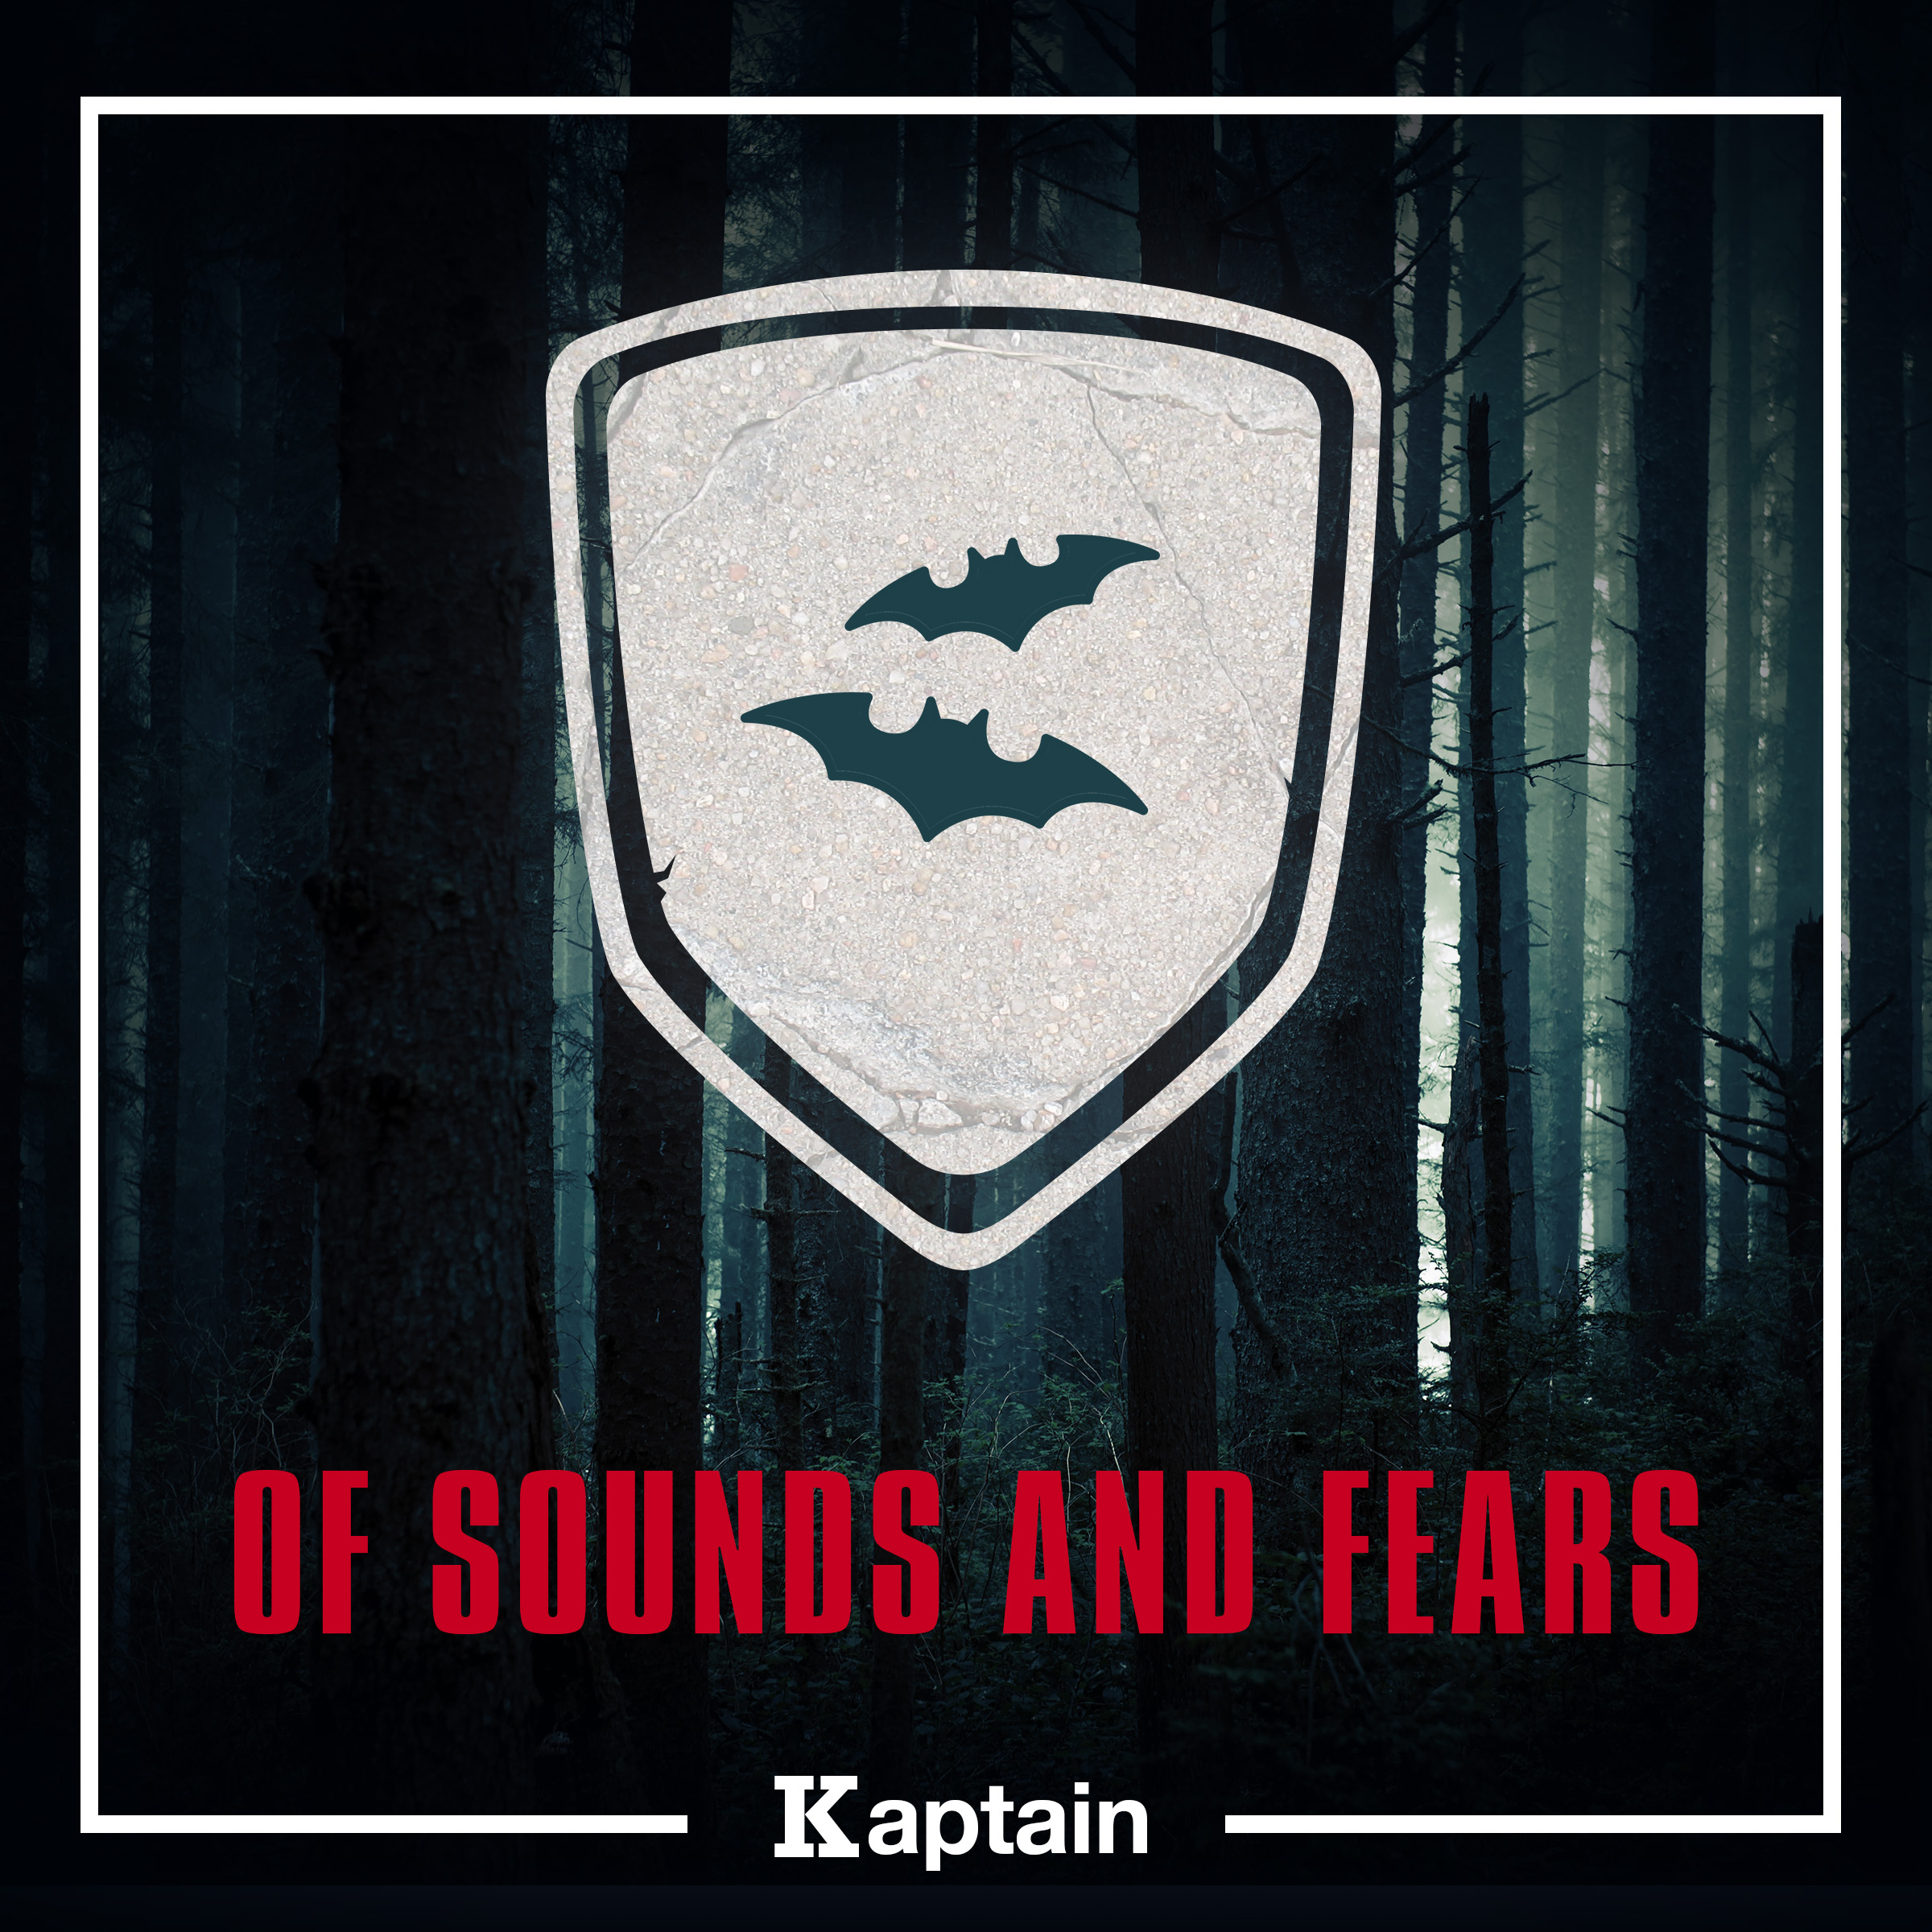 Of Sounds And Fears